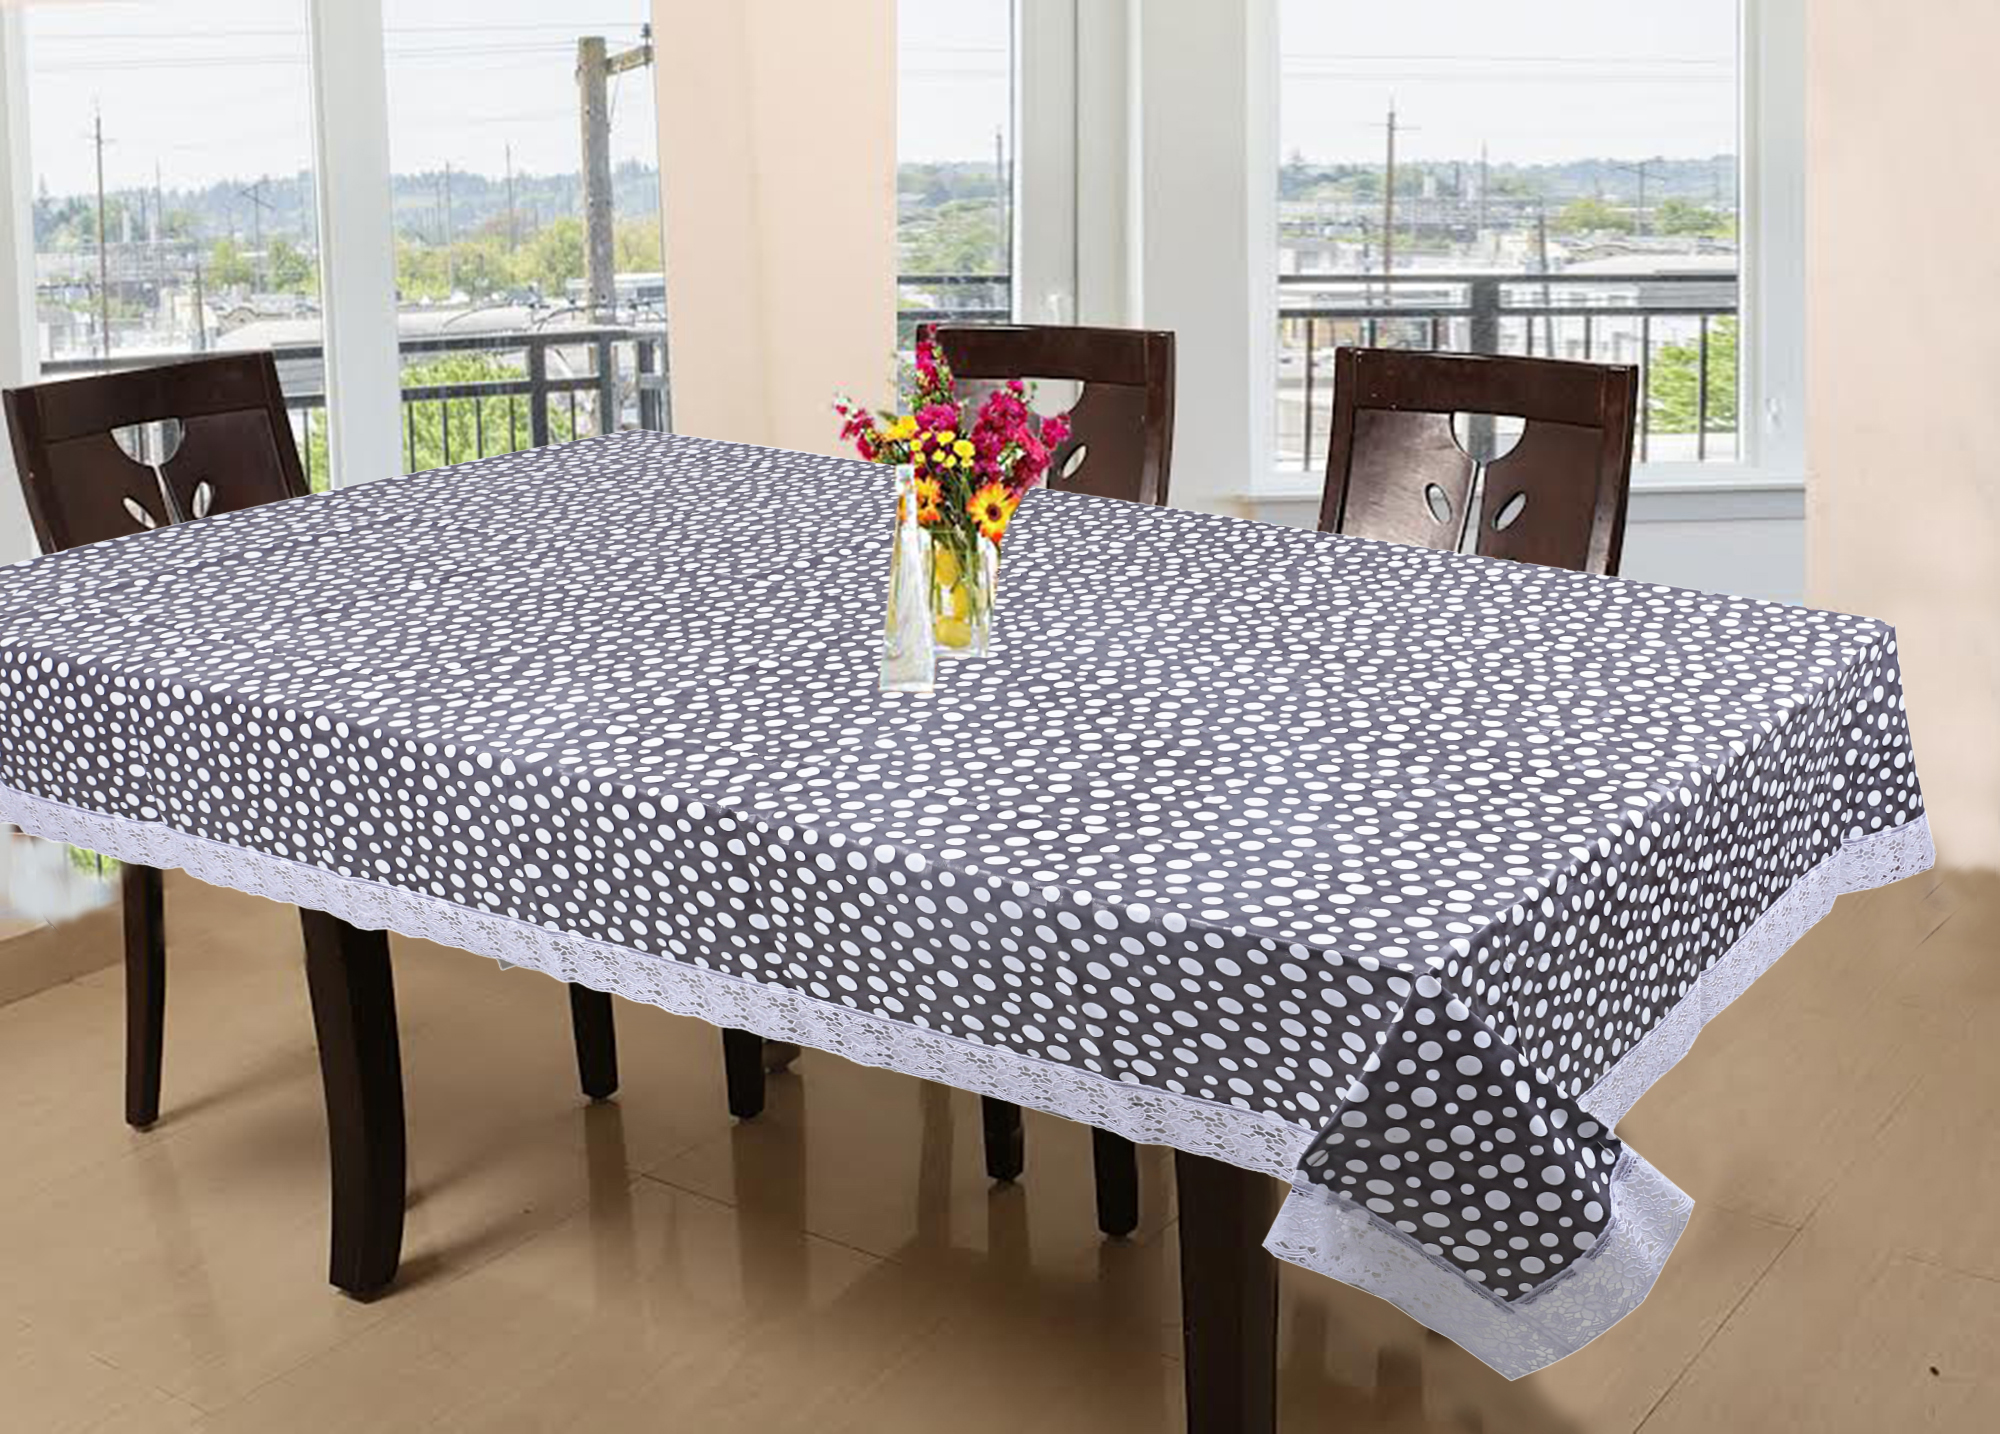 Picture of: Kuber Industries Pvc 6 Seater Dining Table Cover Grey Ctktc5389